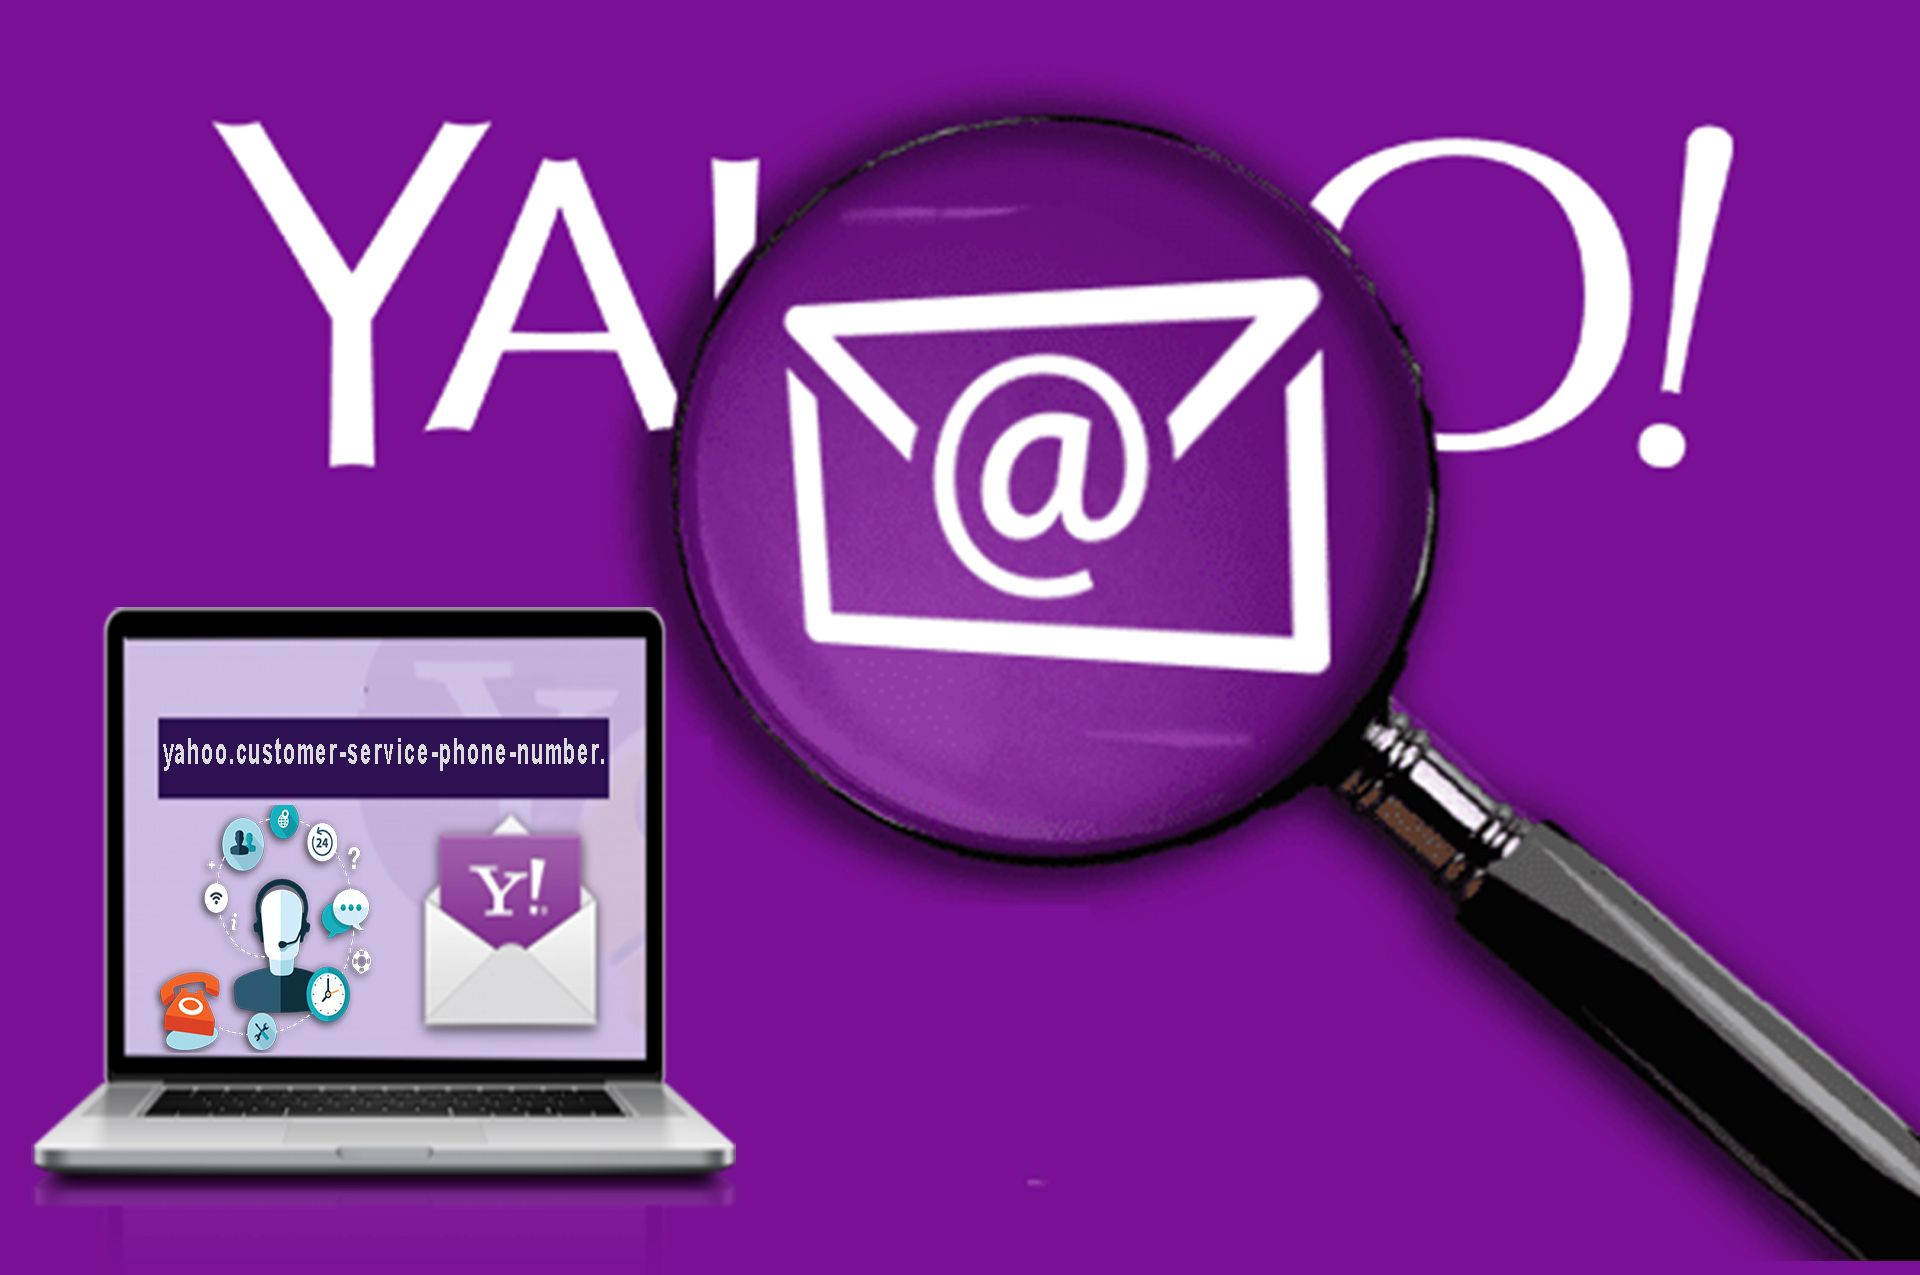 Yahoo mail is the oldest email service that was launched